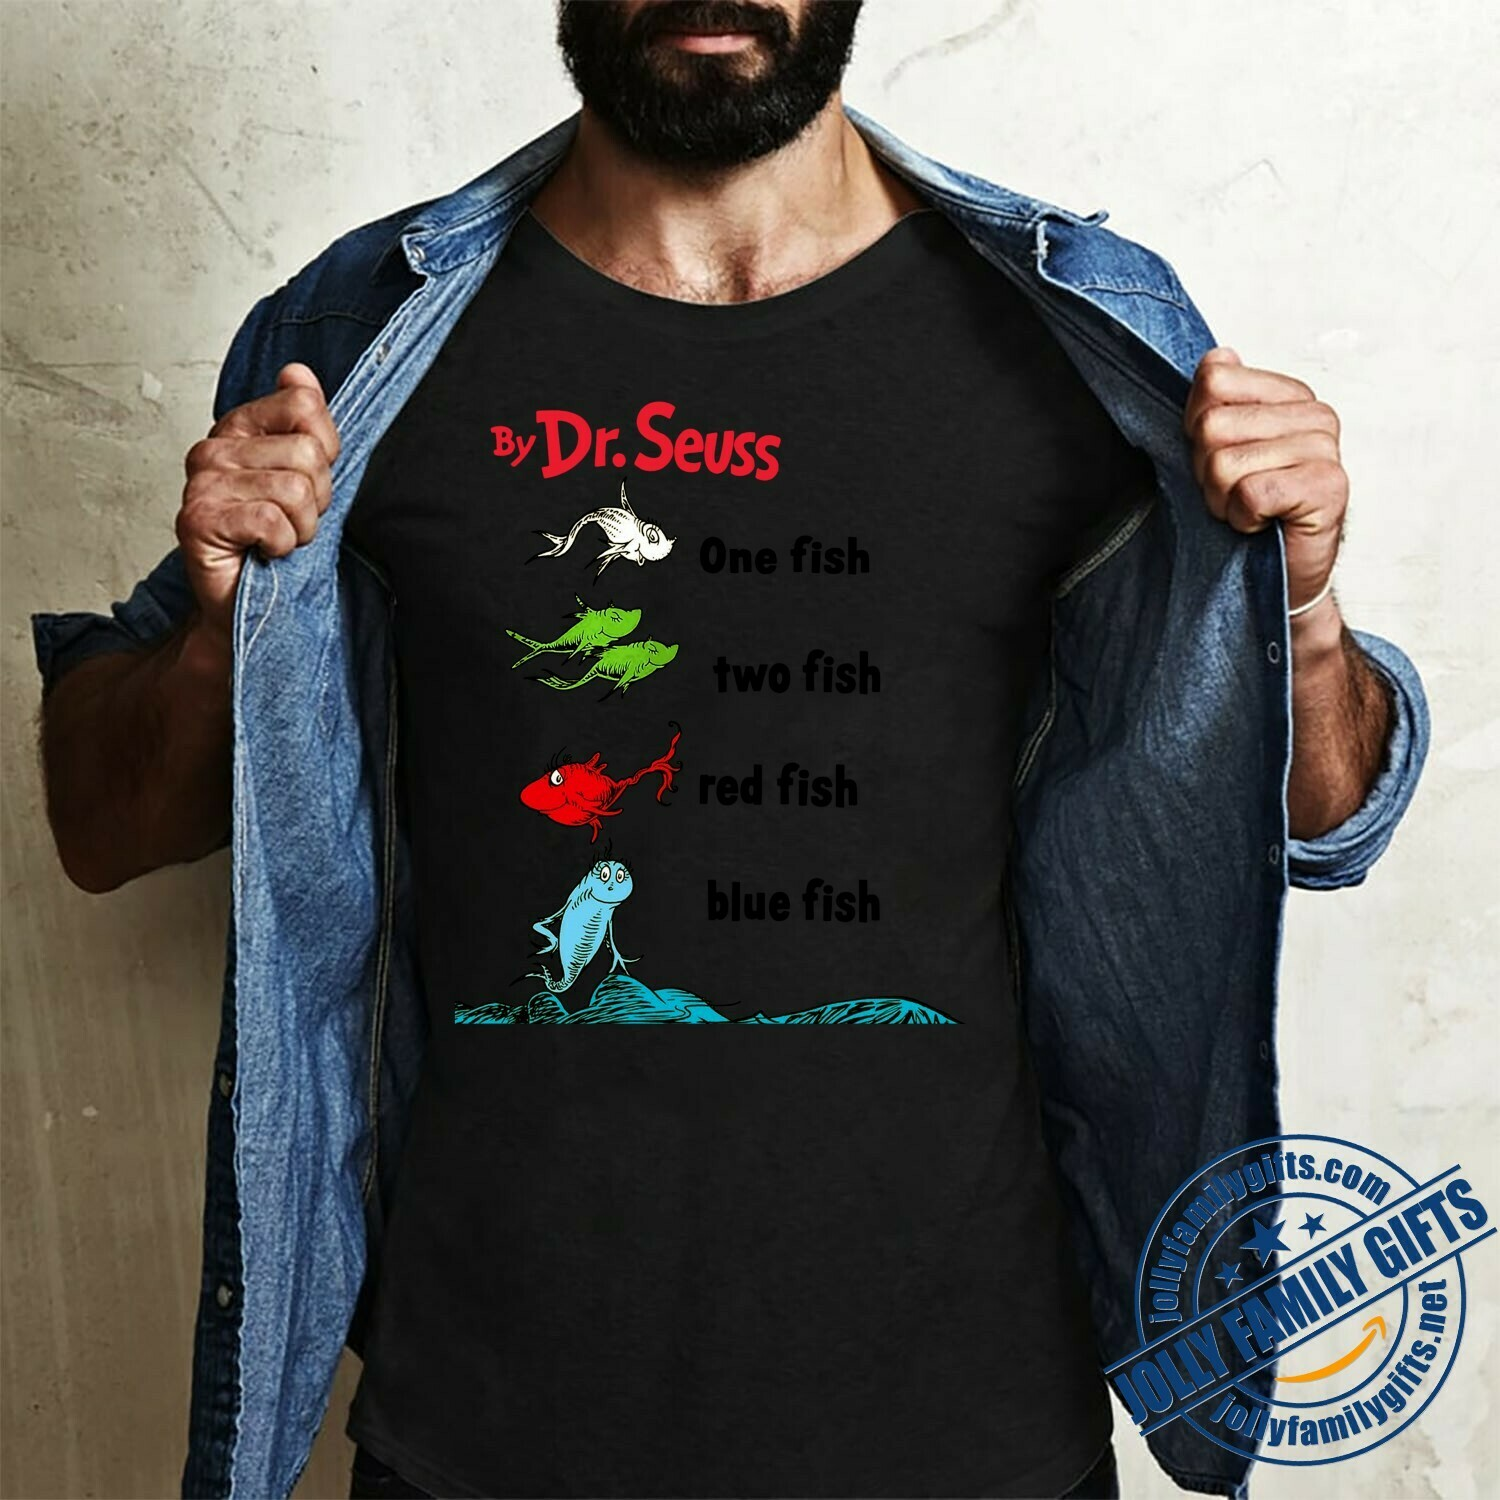 By Dr. Seuss One Fish Two Fish Red Fish Blue Fish Book Cover Image T-shirt for beginning readers s Teacher Unisex T-Shirt Hoodie Sweatshirt Sweater Plus Size for Ladies Women Men Kids Youth Gifts Tee